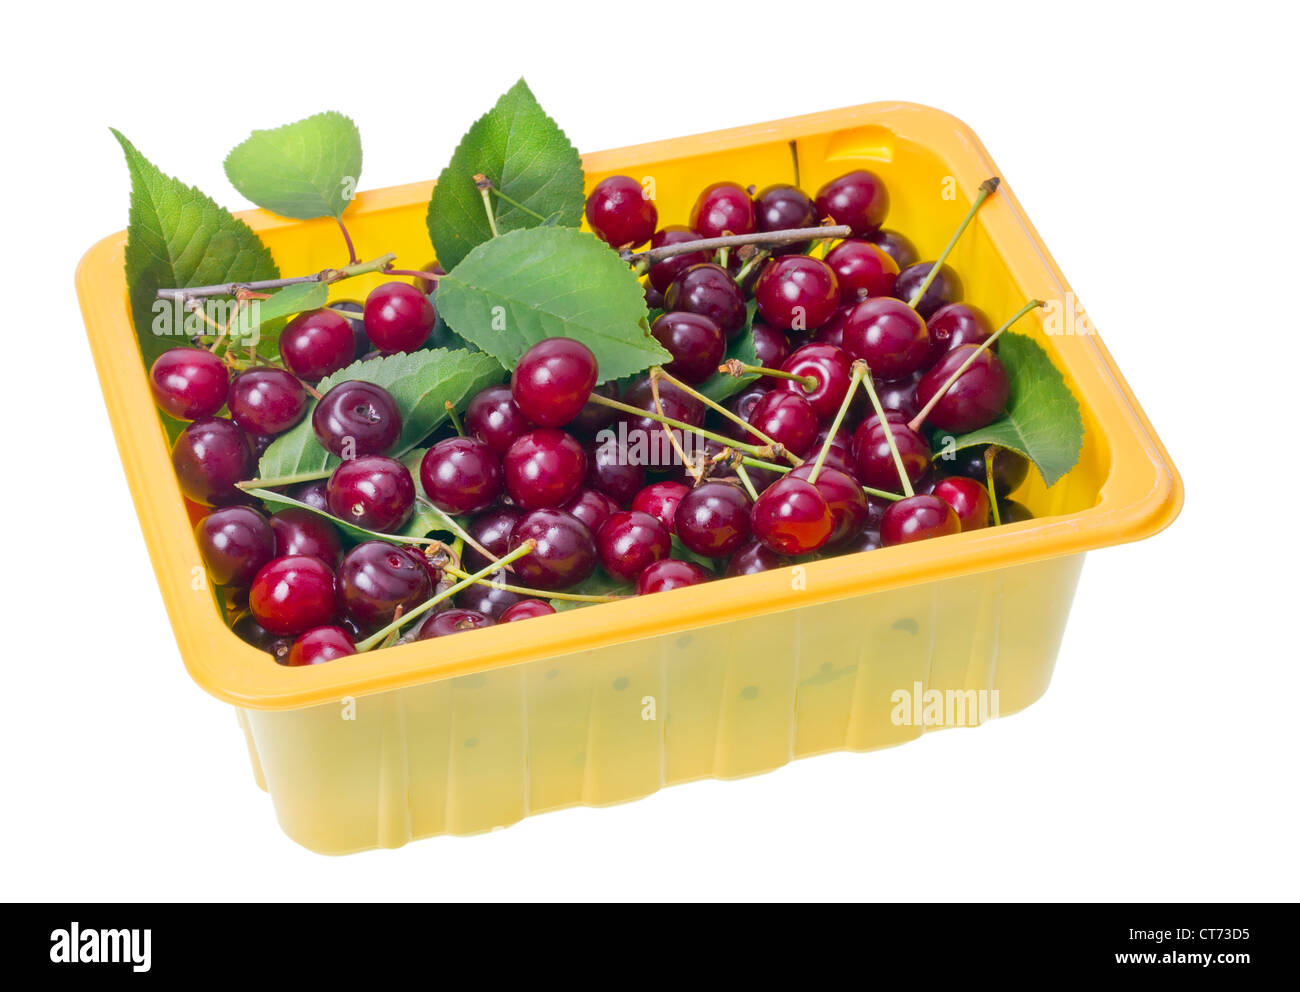 Used yellow plastic container with red black ripe garden cherries berries and leaves. Isolated, selective focus - Stock Image